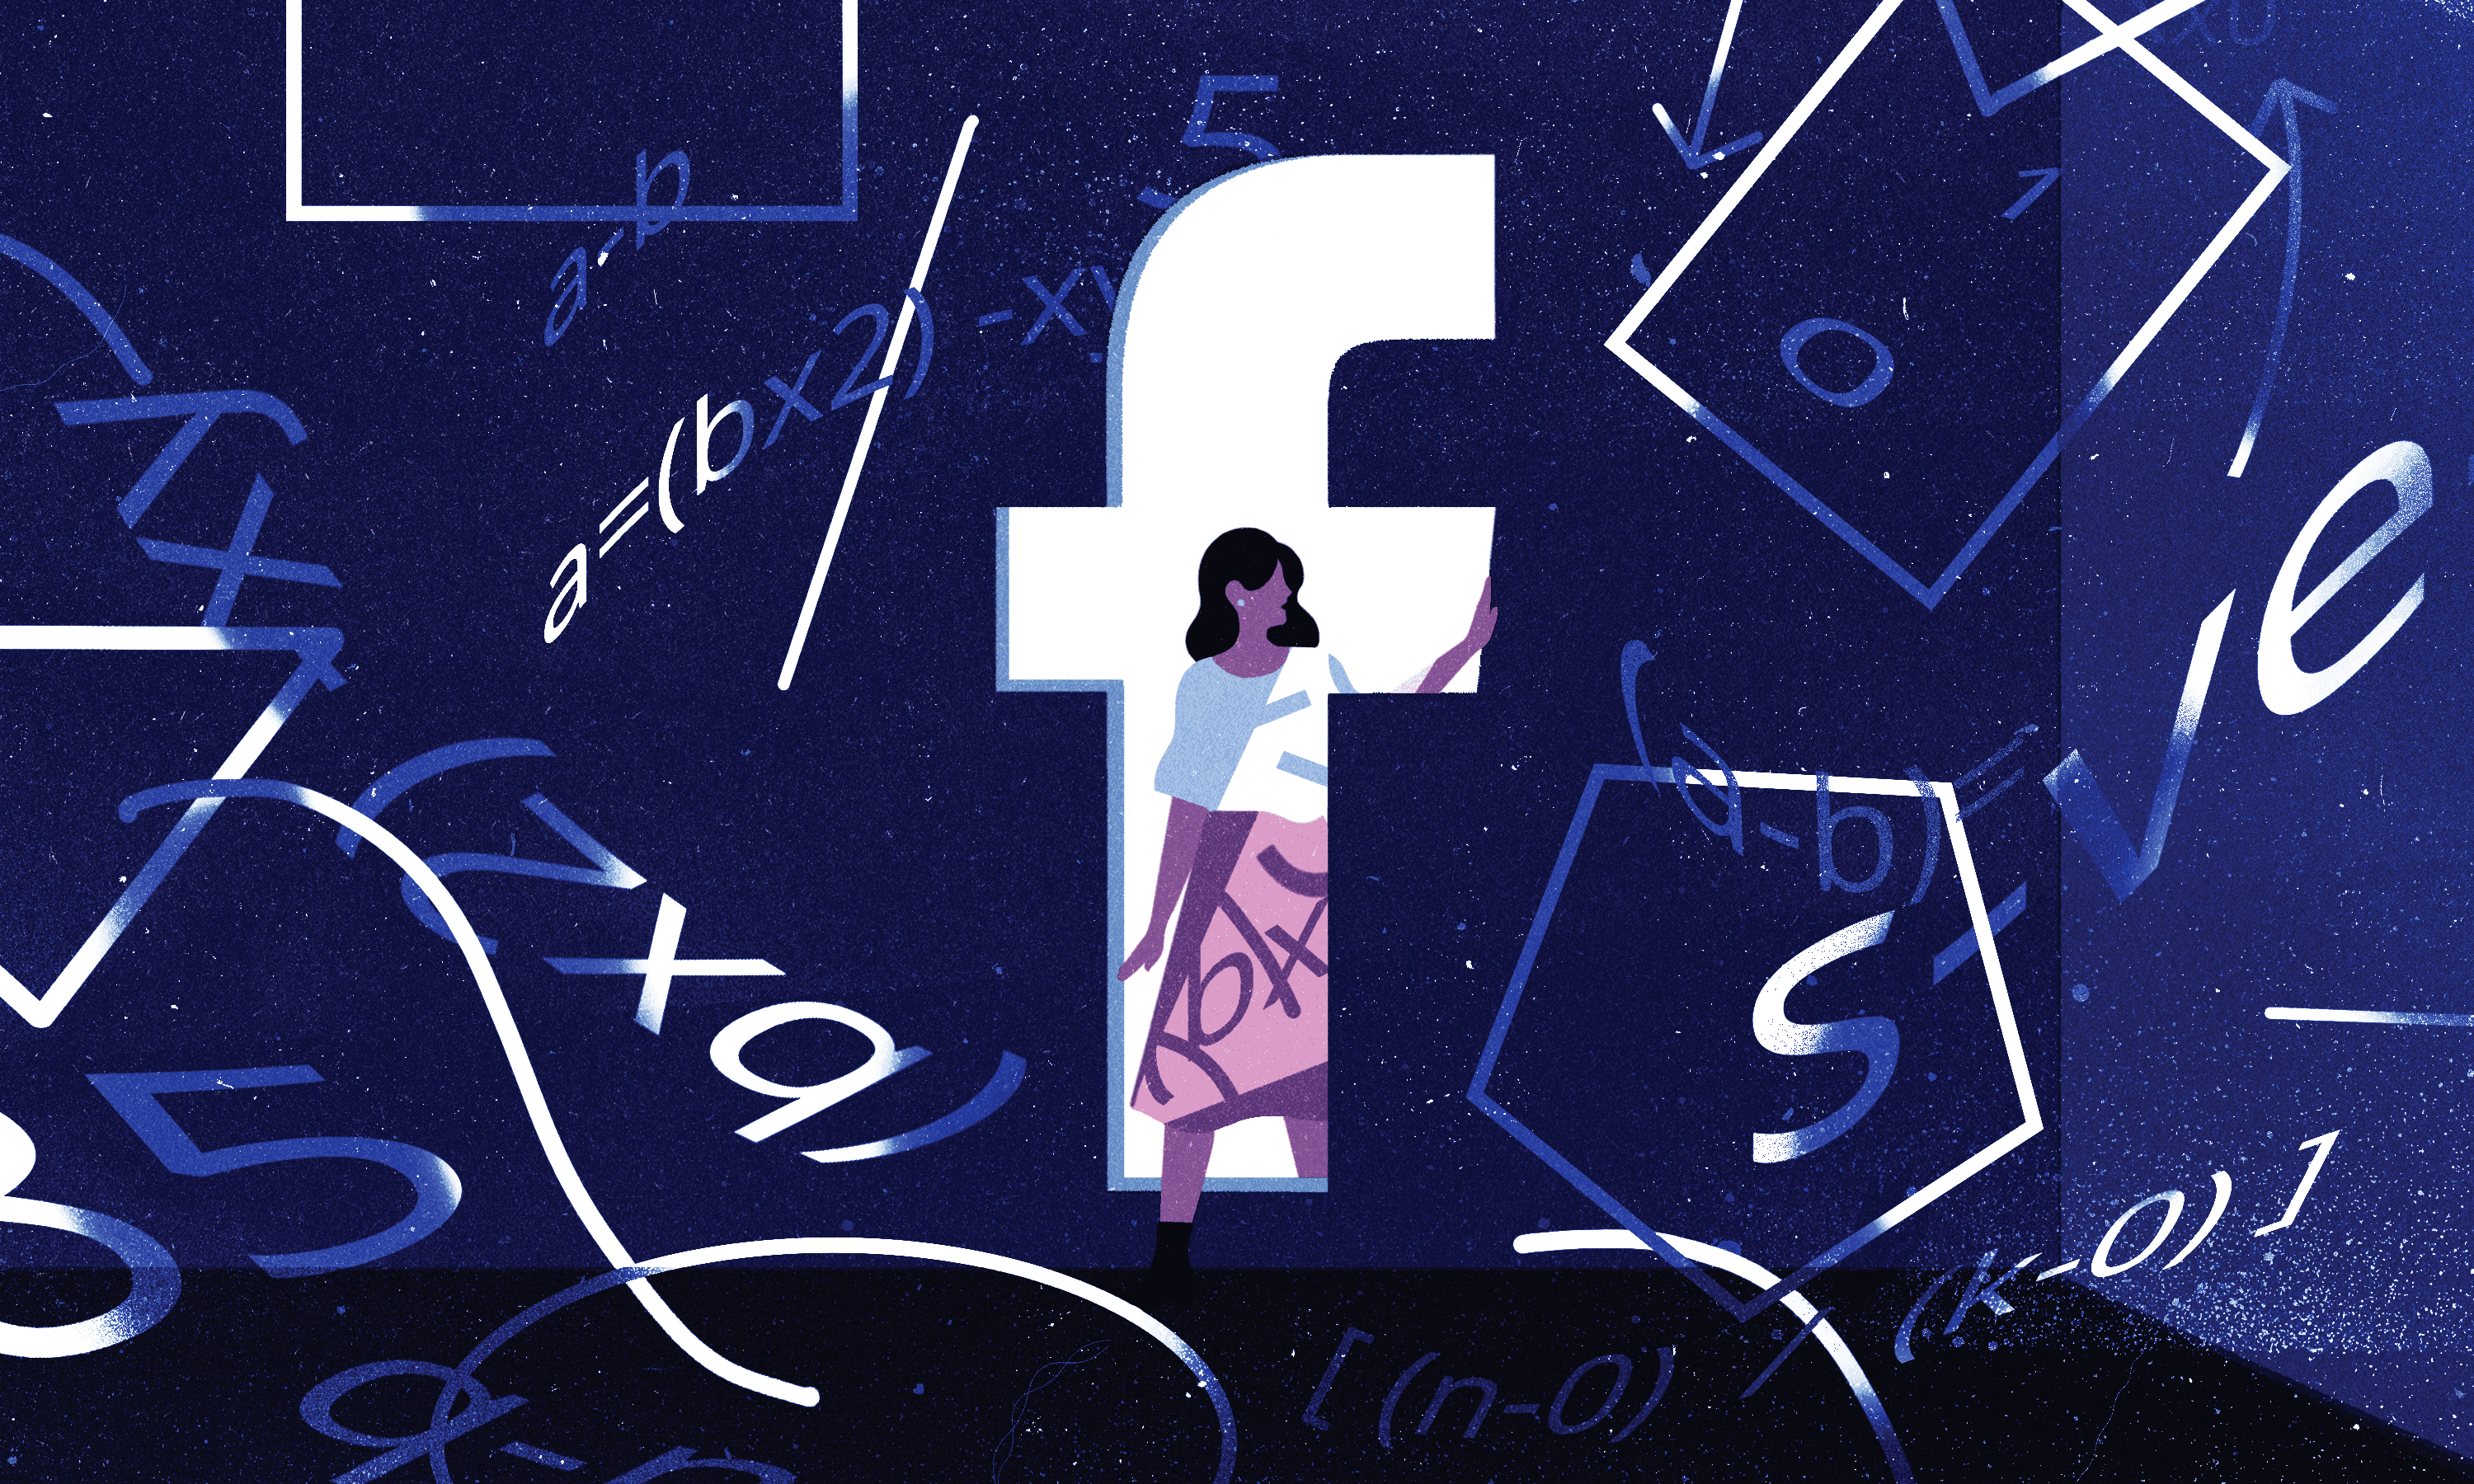 Facebook is shaping public discourse. We need to understand how